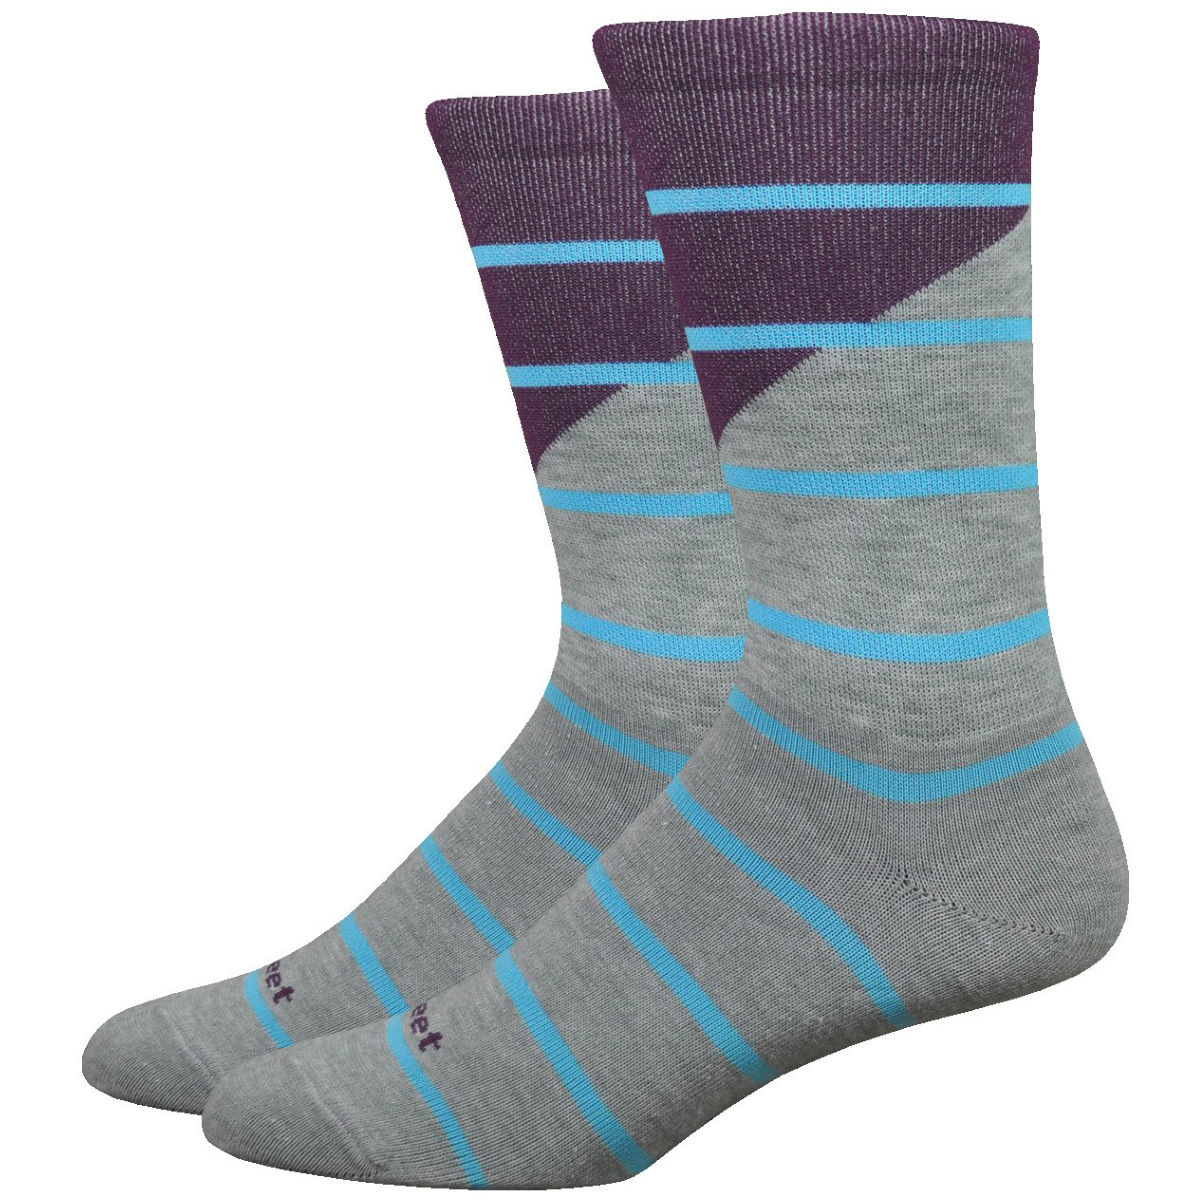 "DeFeet DeFeet Mondo Comp 7"" Tieon Socks   Socks"